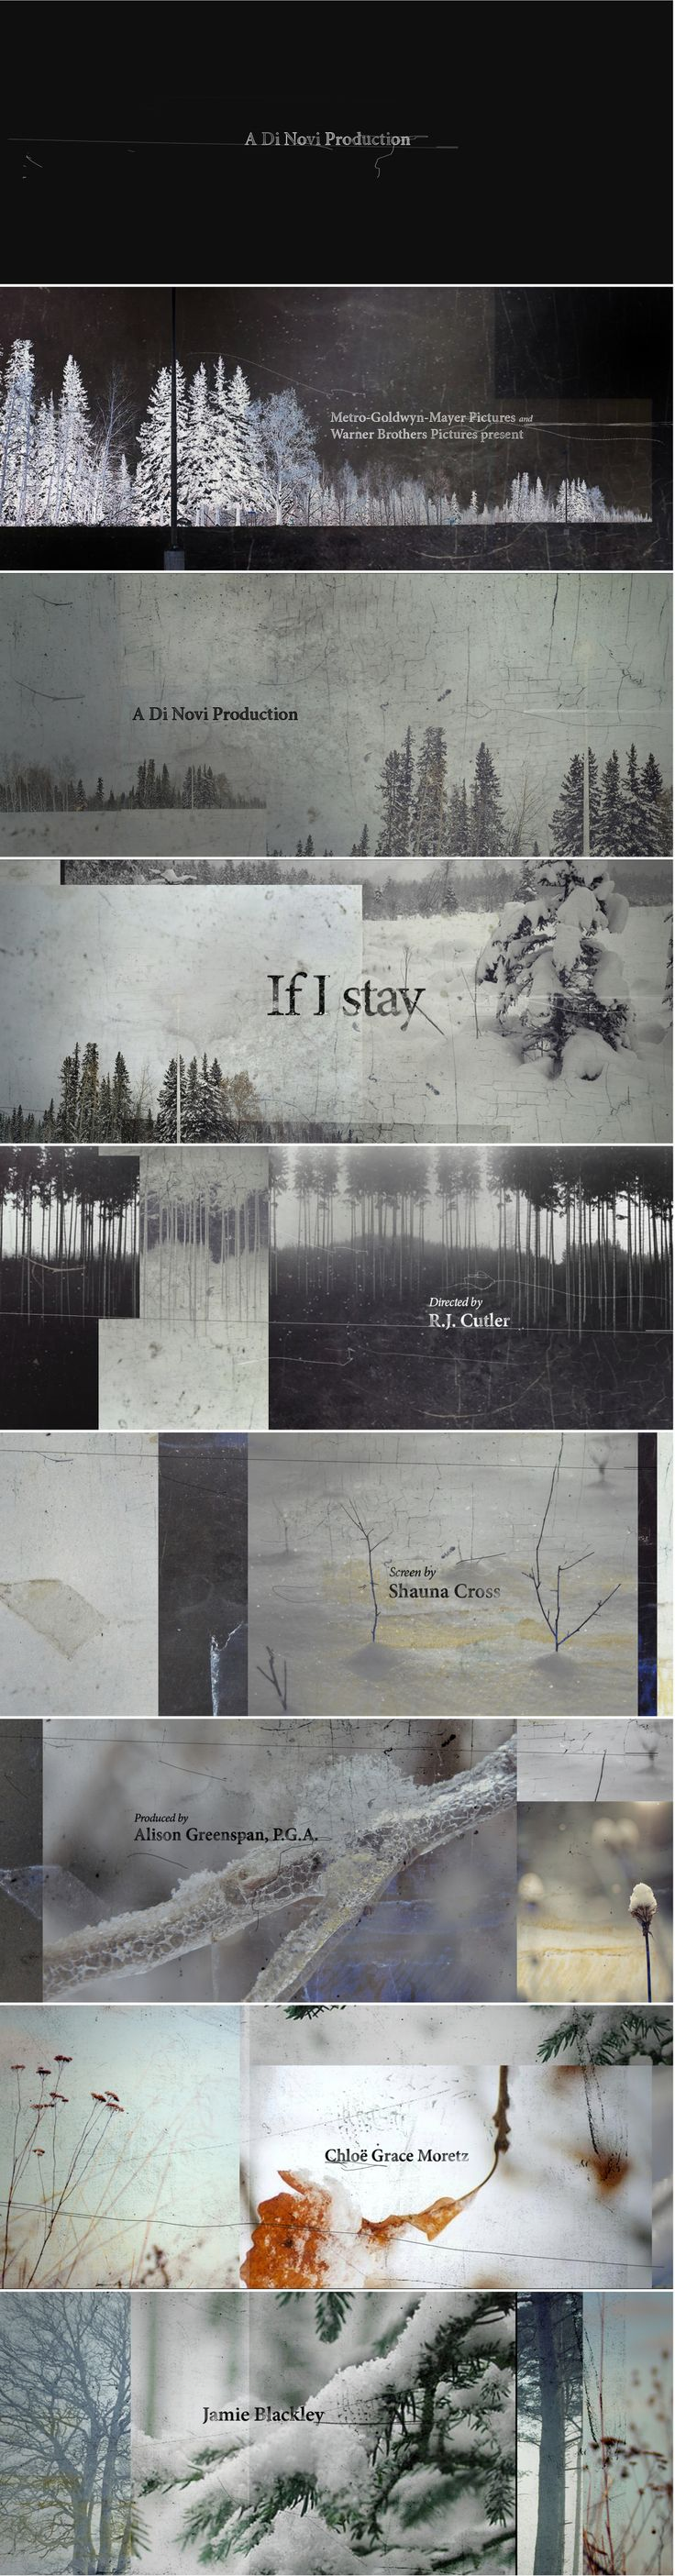 If I stay - Hyejung Bae